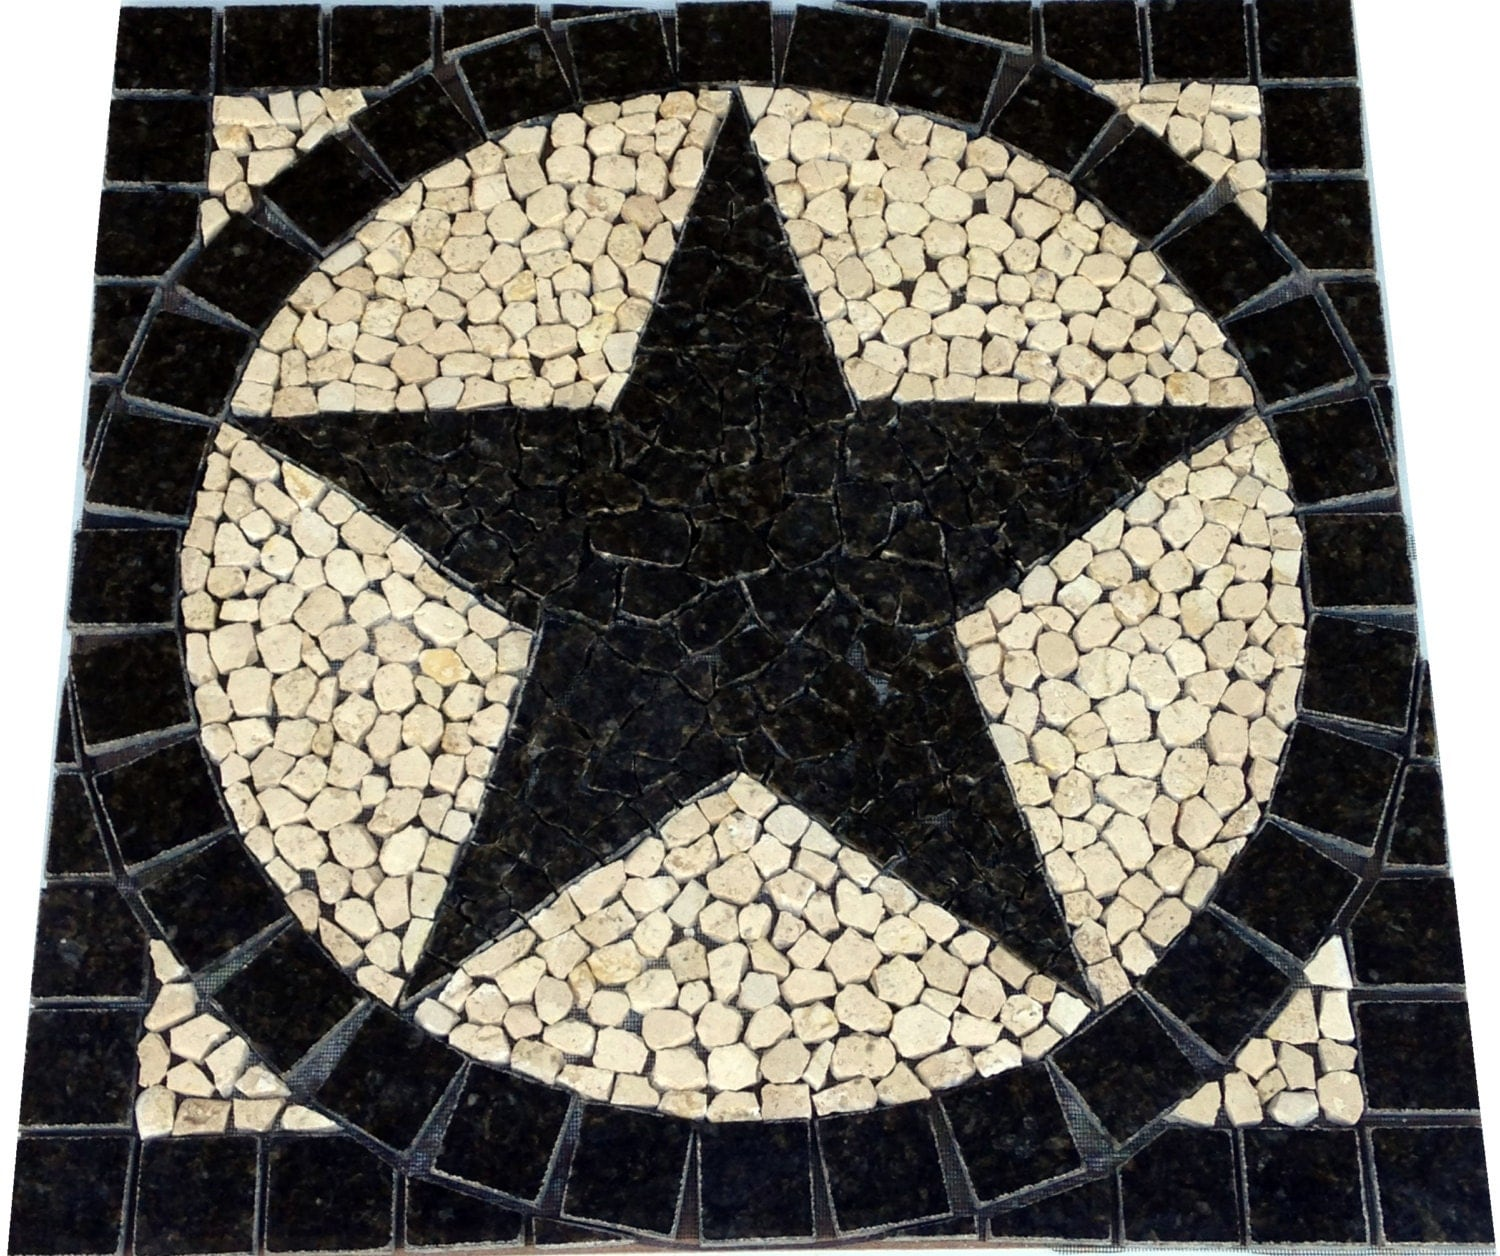 sq uba tuba granite texas star mosaic tile medallion